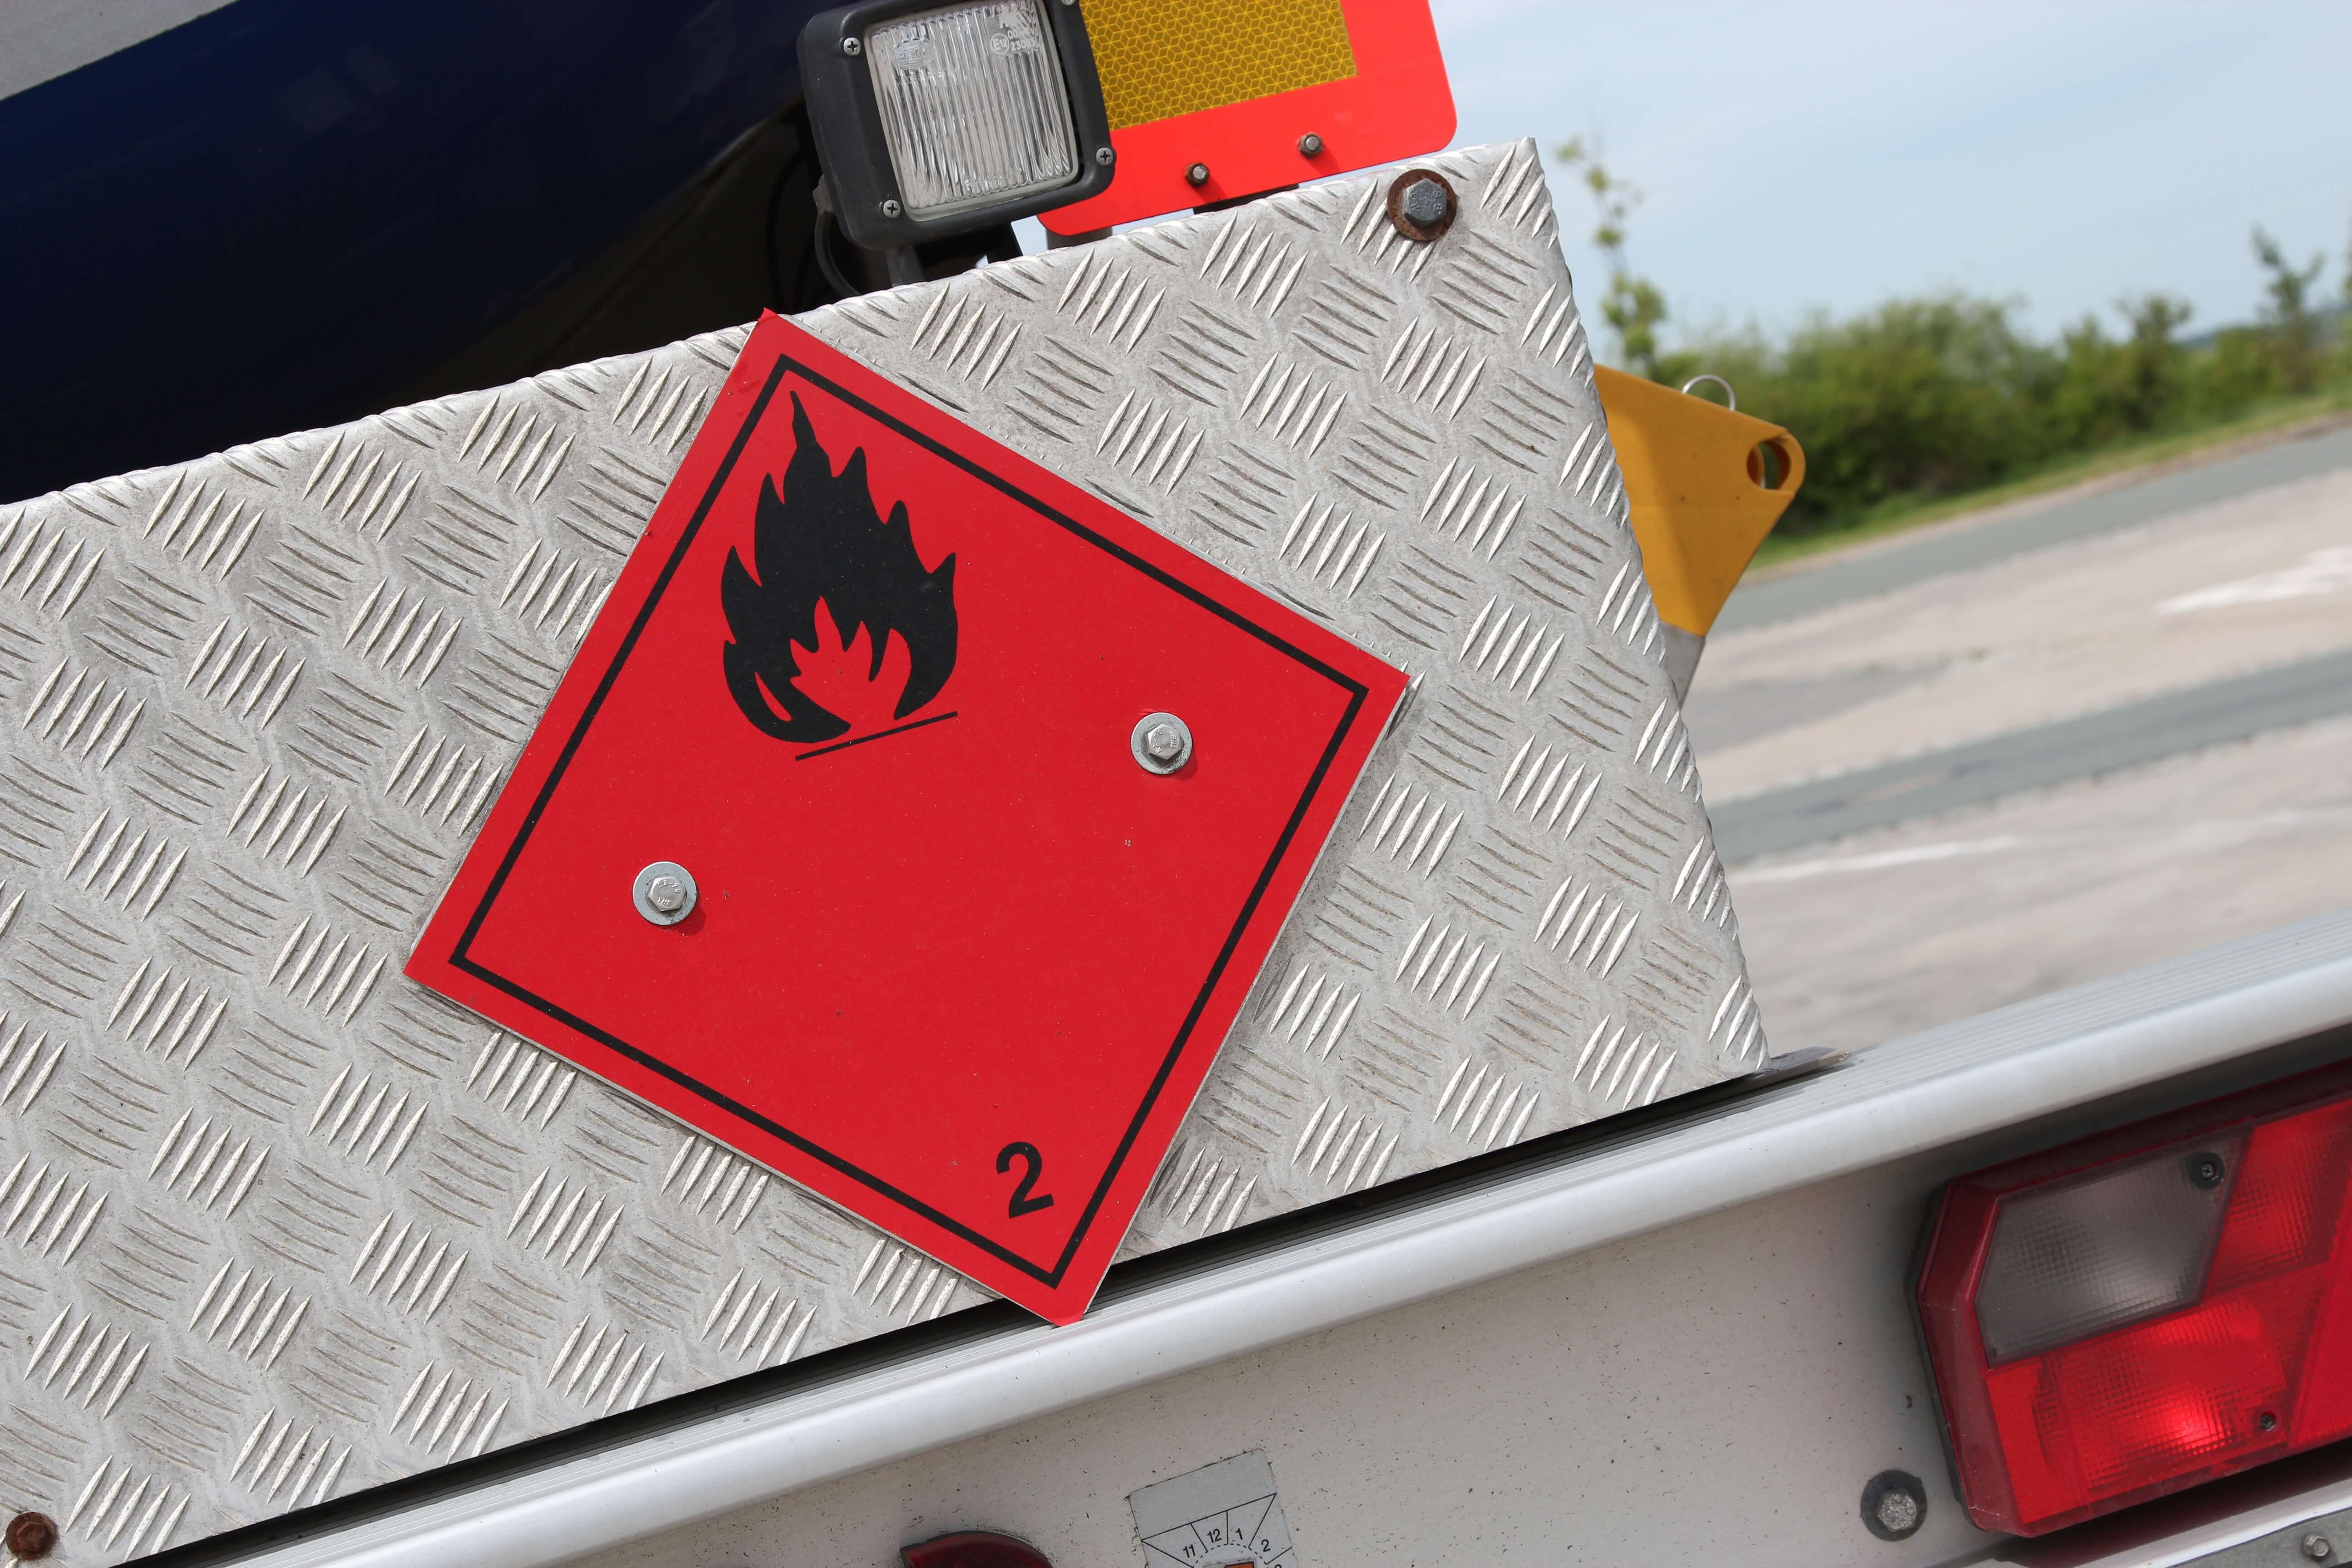 What are flammable substances?